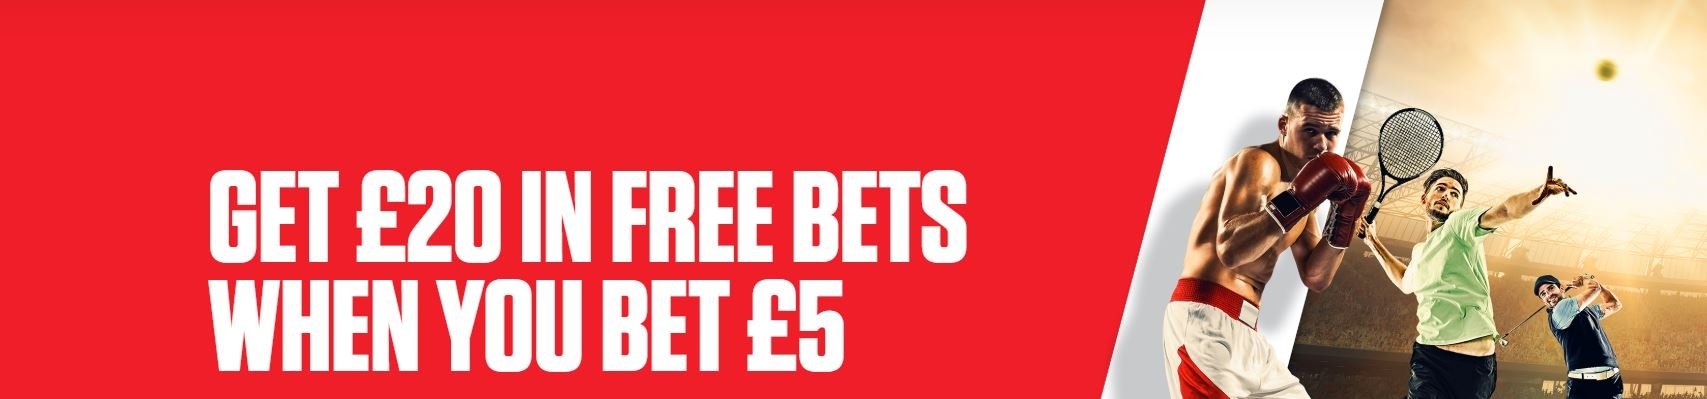 ladbrokes new sports offer banner